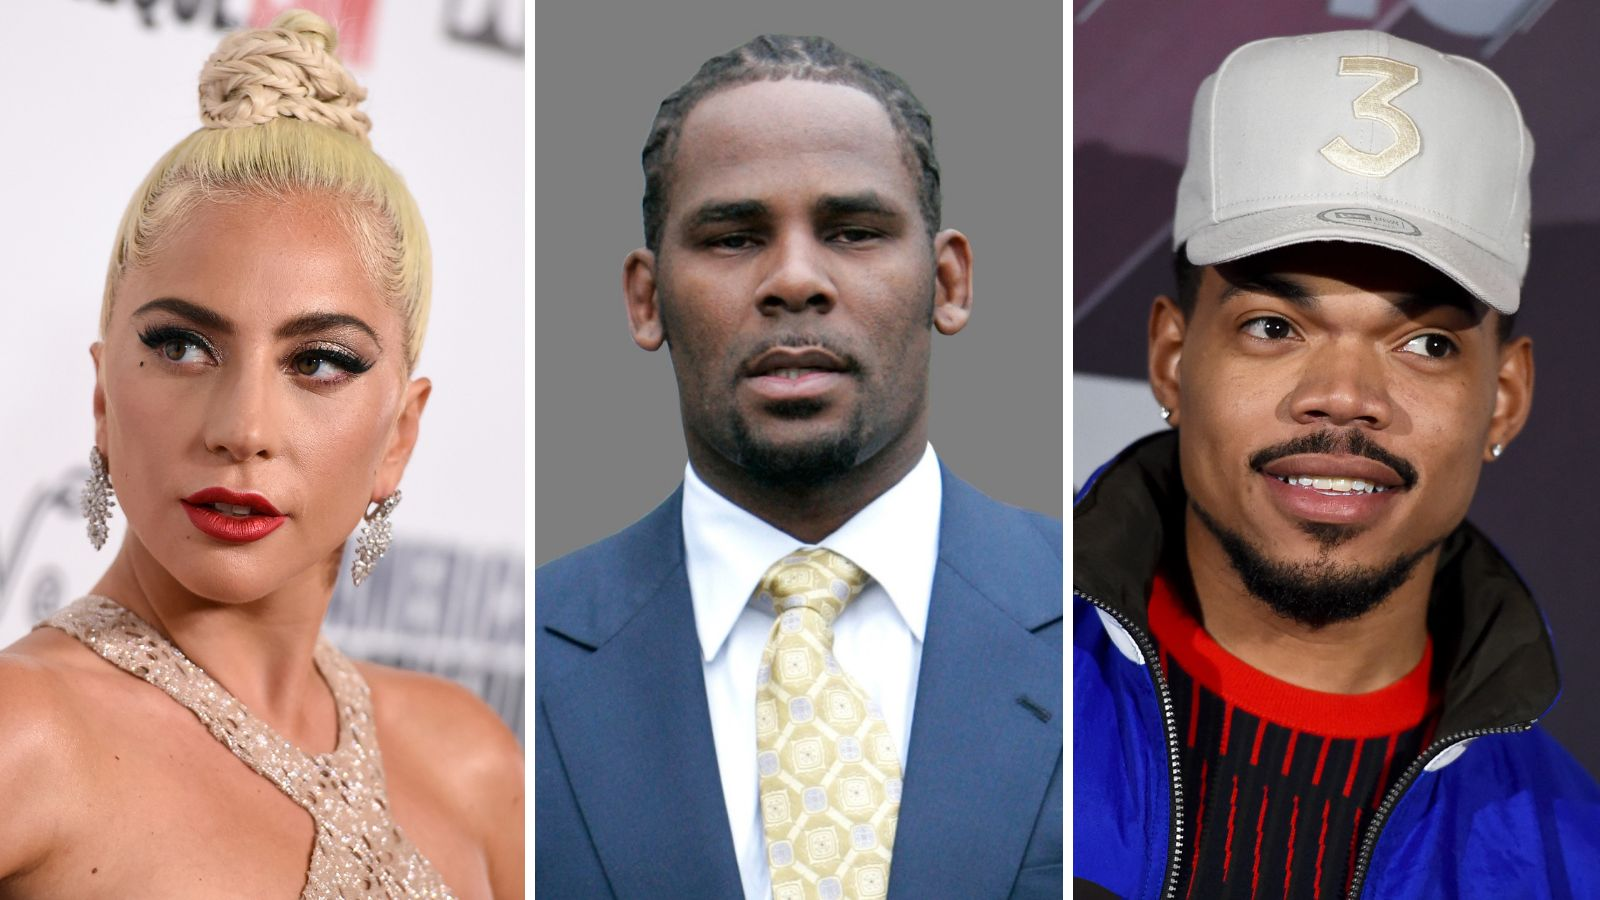 Lady Gaga and Chance the Rapper finally saw the light on R. Kelly.